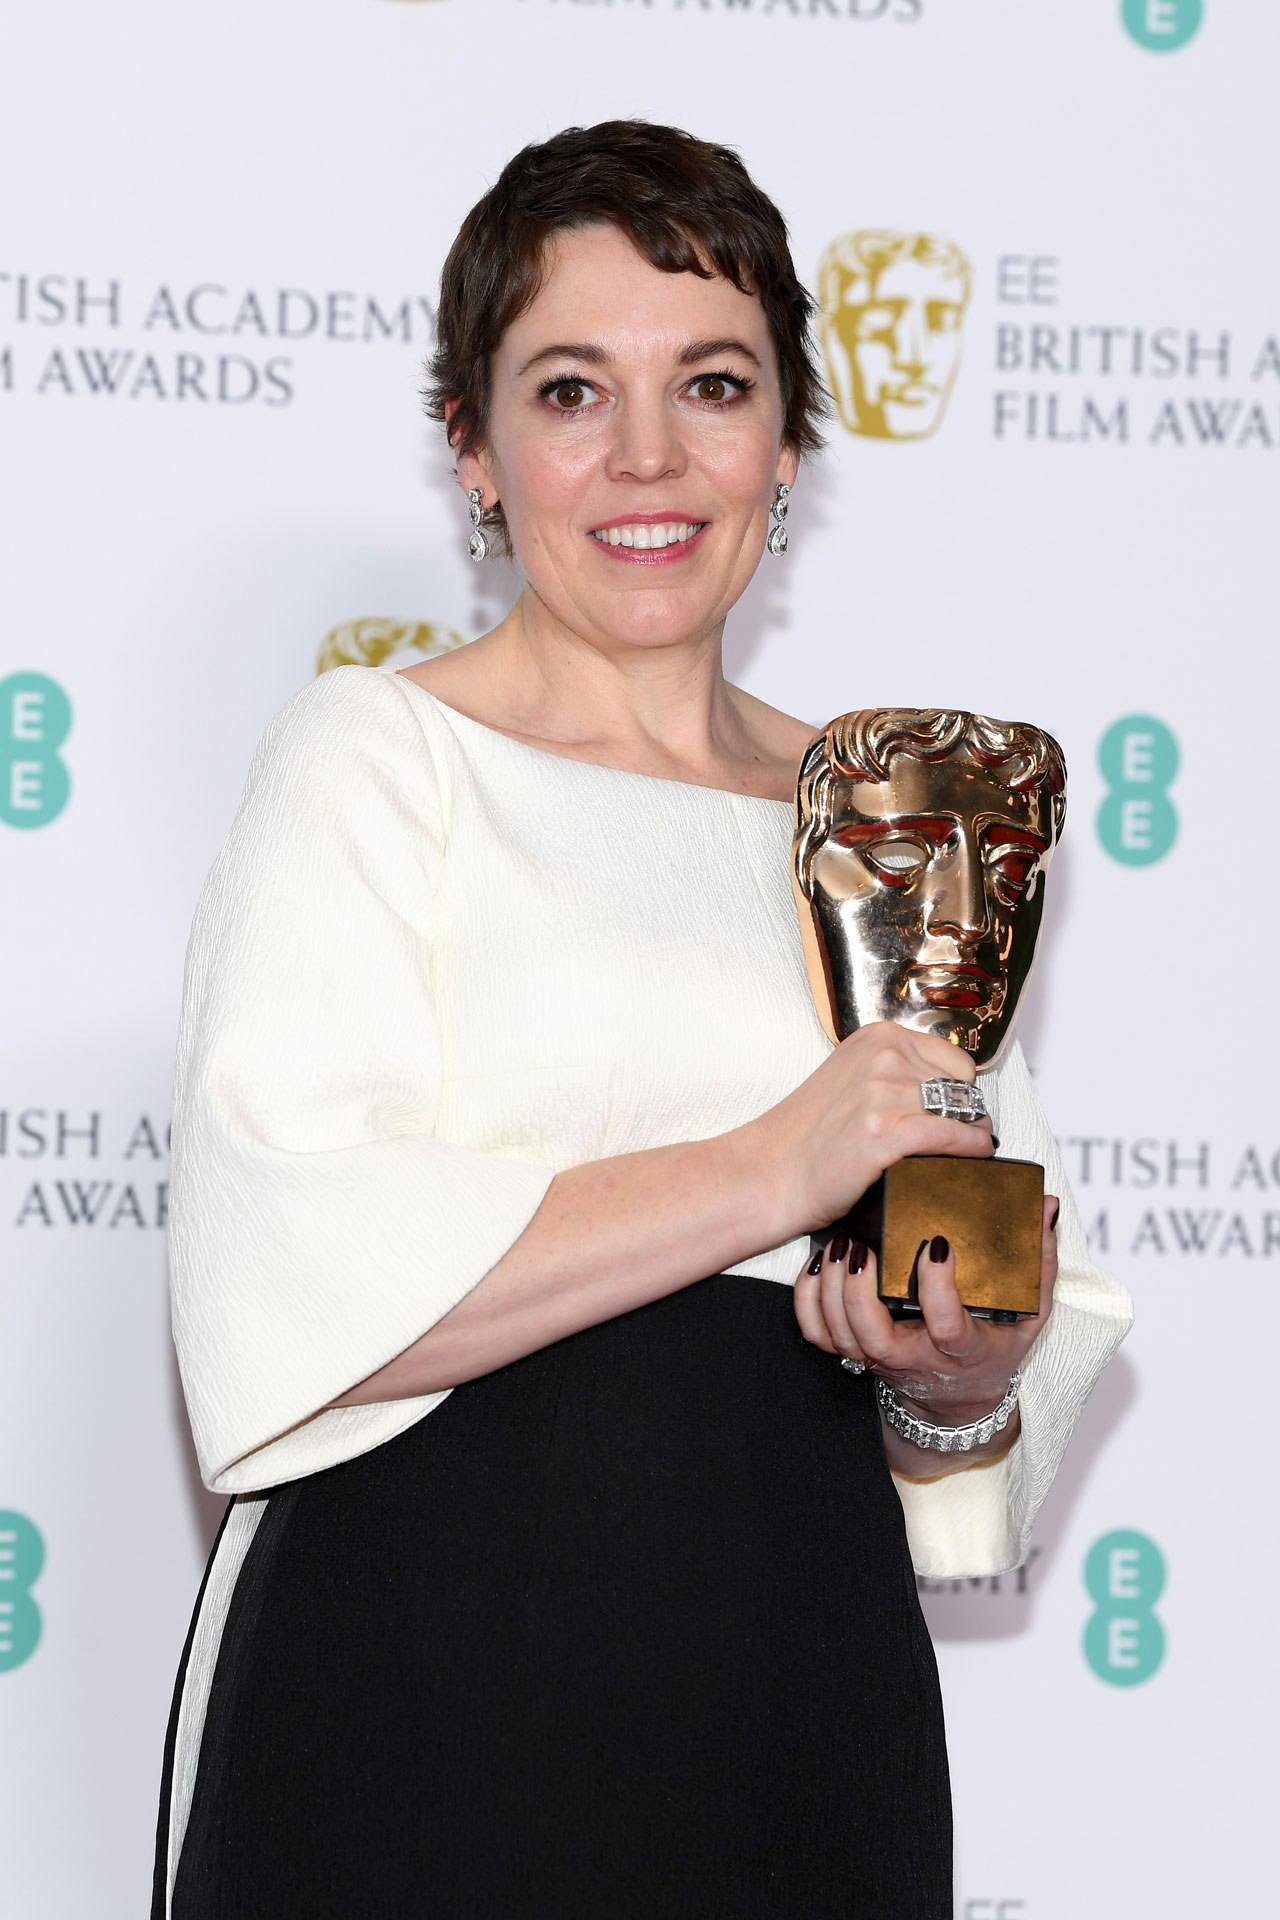 Every single winner from the 2019 BAFTAs